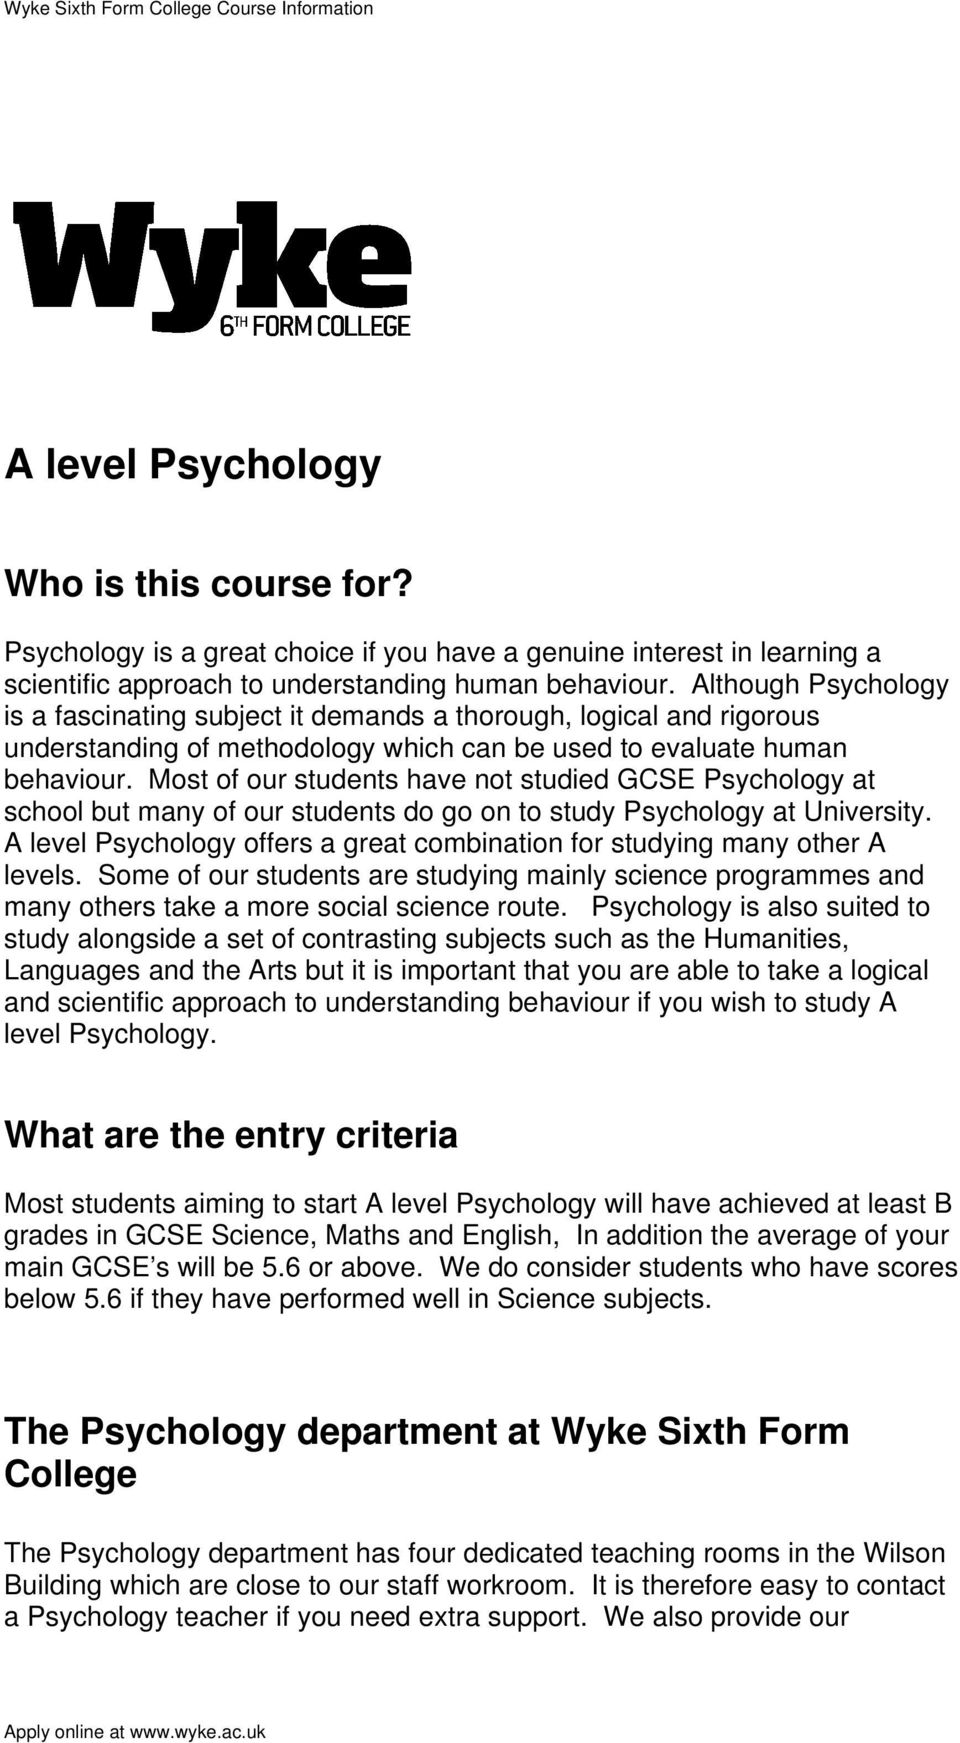 Most of our students have not studied GCSE Psychology at school but many of our students do go on to study Psychology at University.